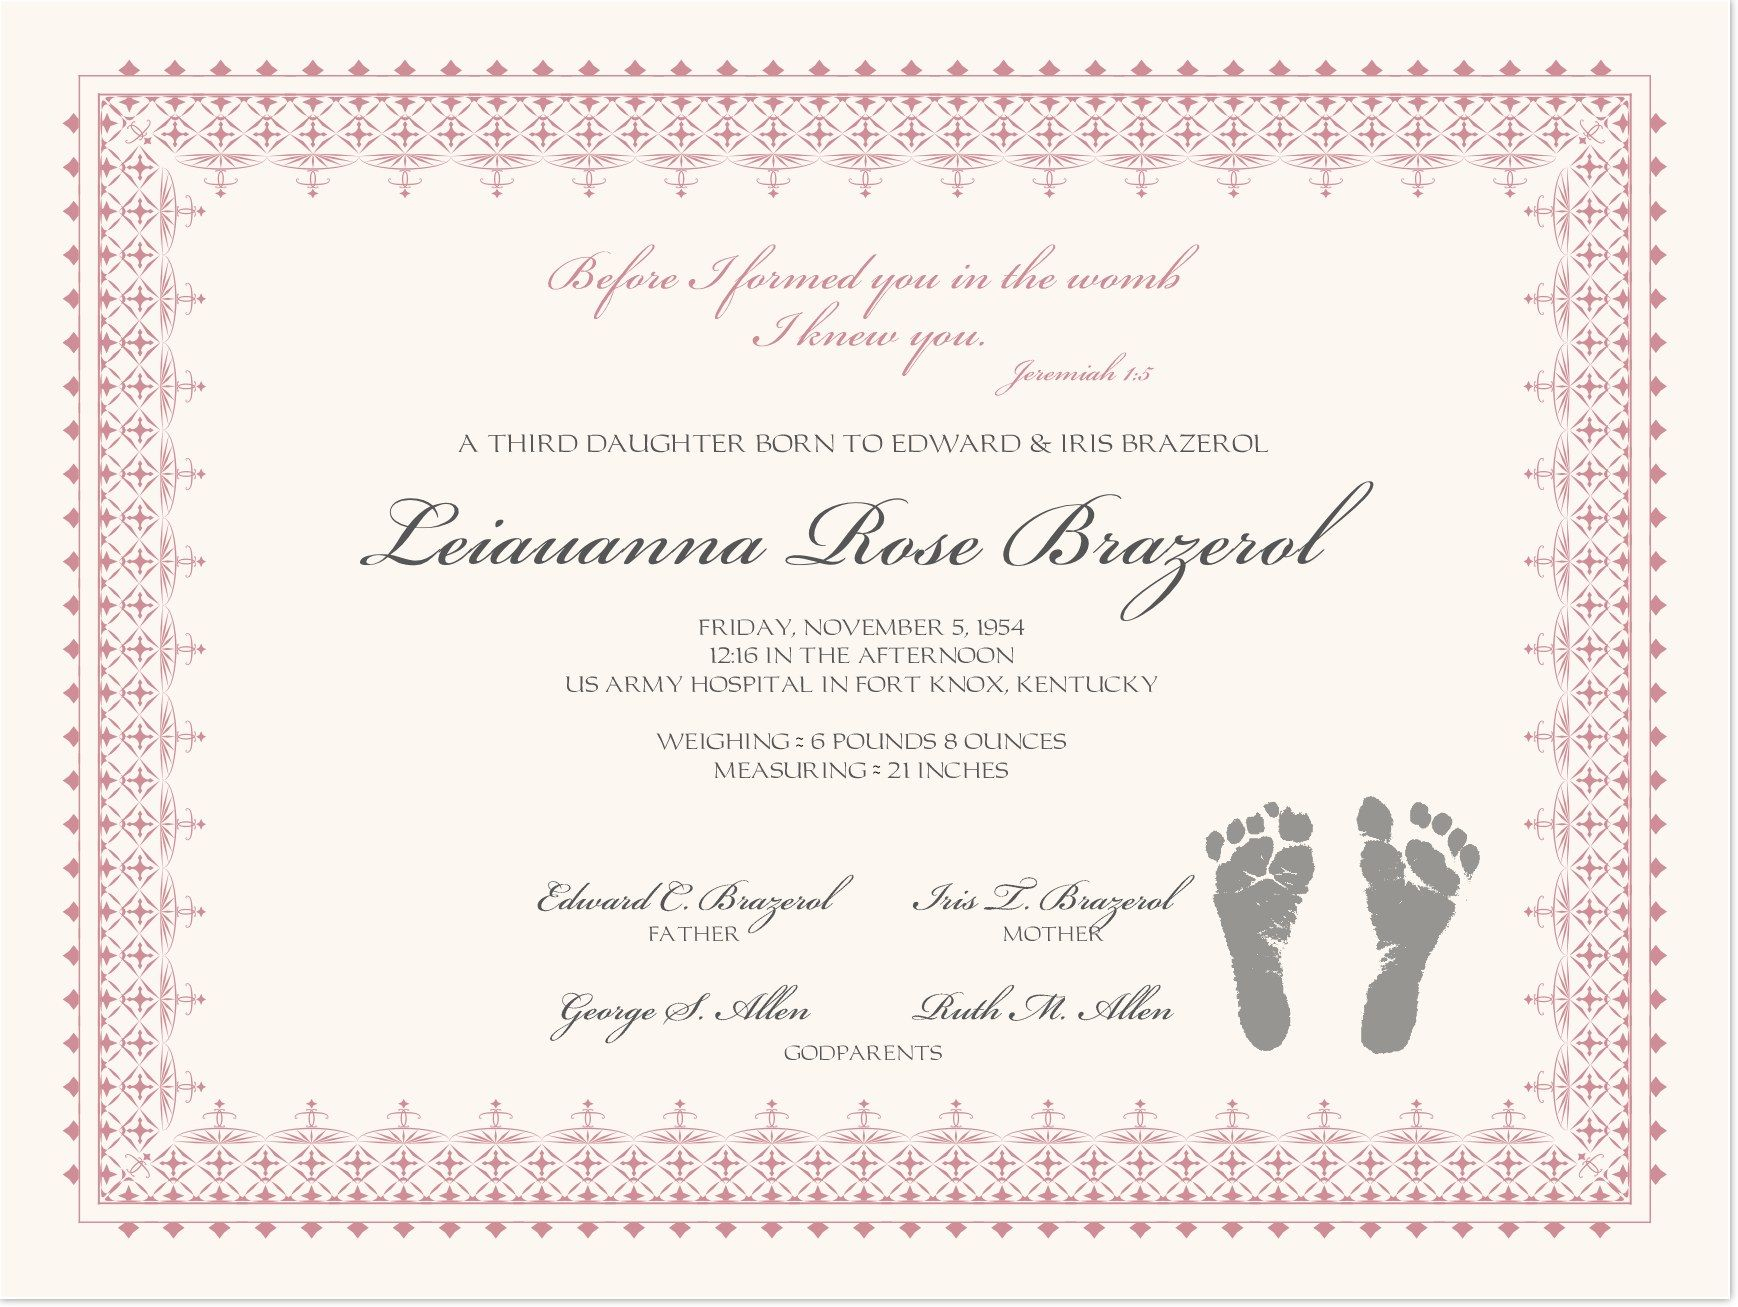 Footprints Baby Certificates | Birth Certificate Template Throughout Baby Christening Certificate Template